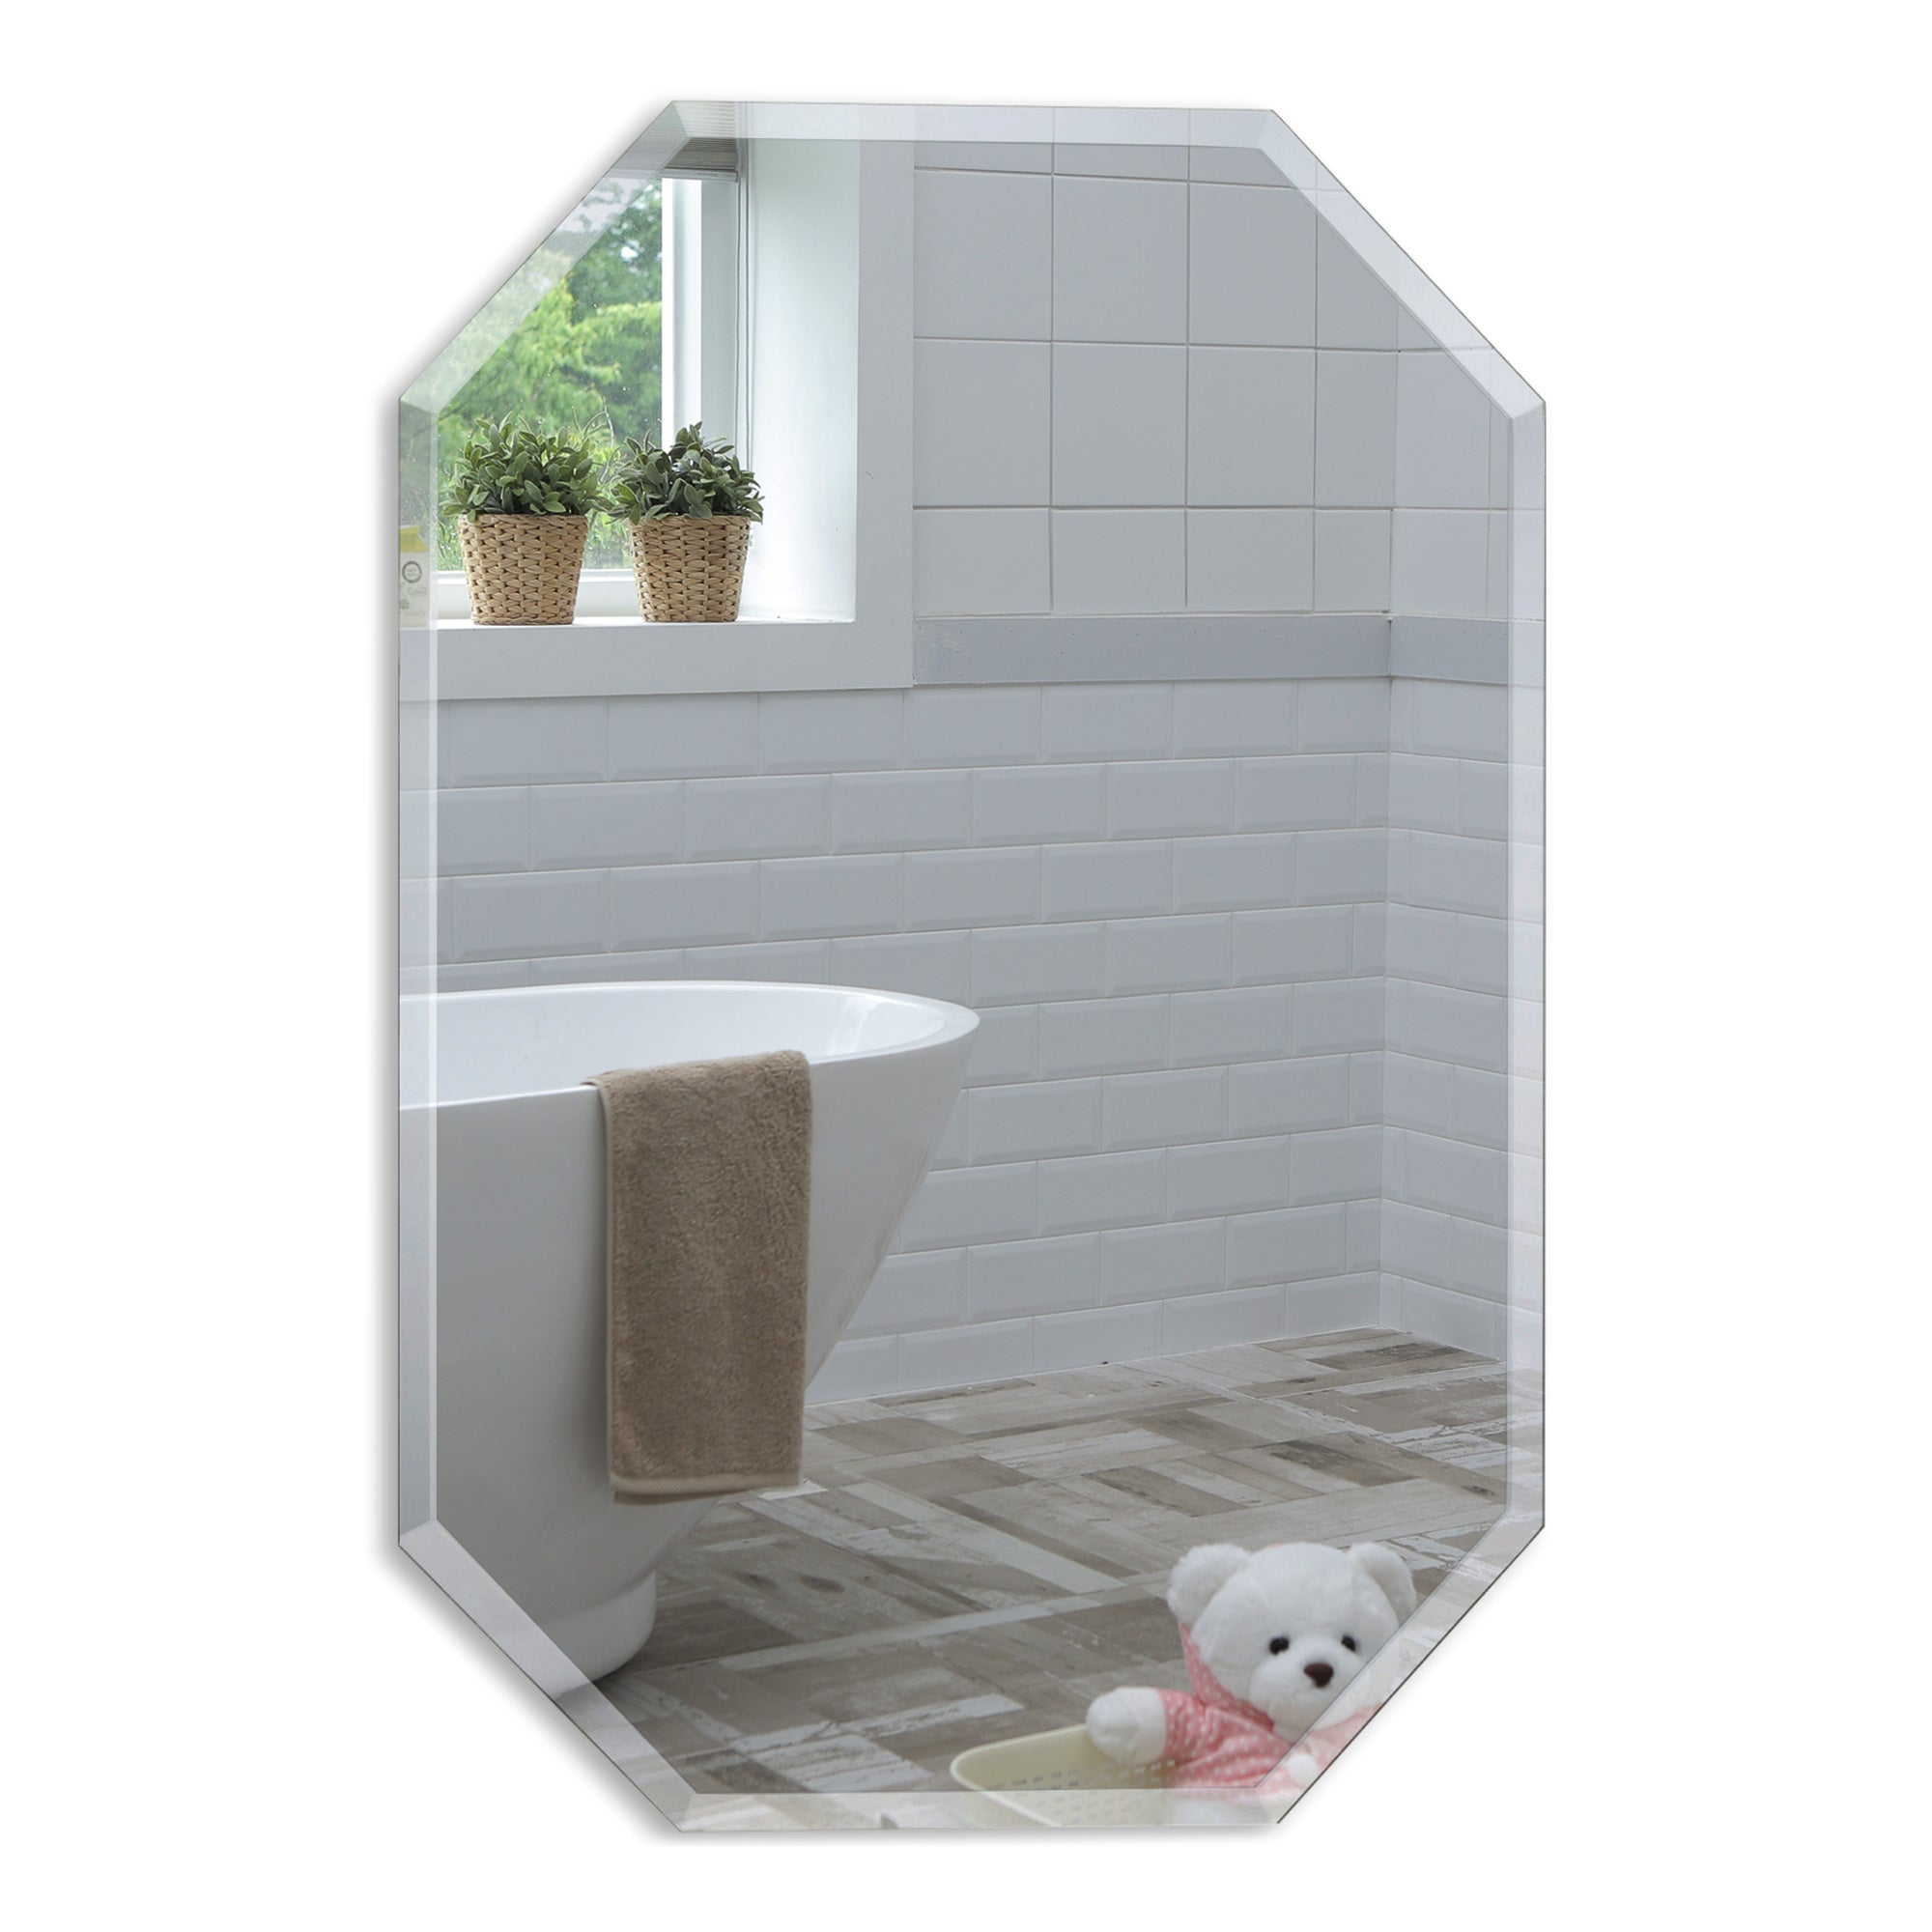 Modern Octagon Bathroom Wall Mirror Two Sizes 70Hx50Wcm & 50Hx40Wcm